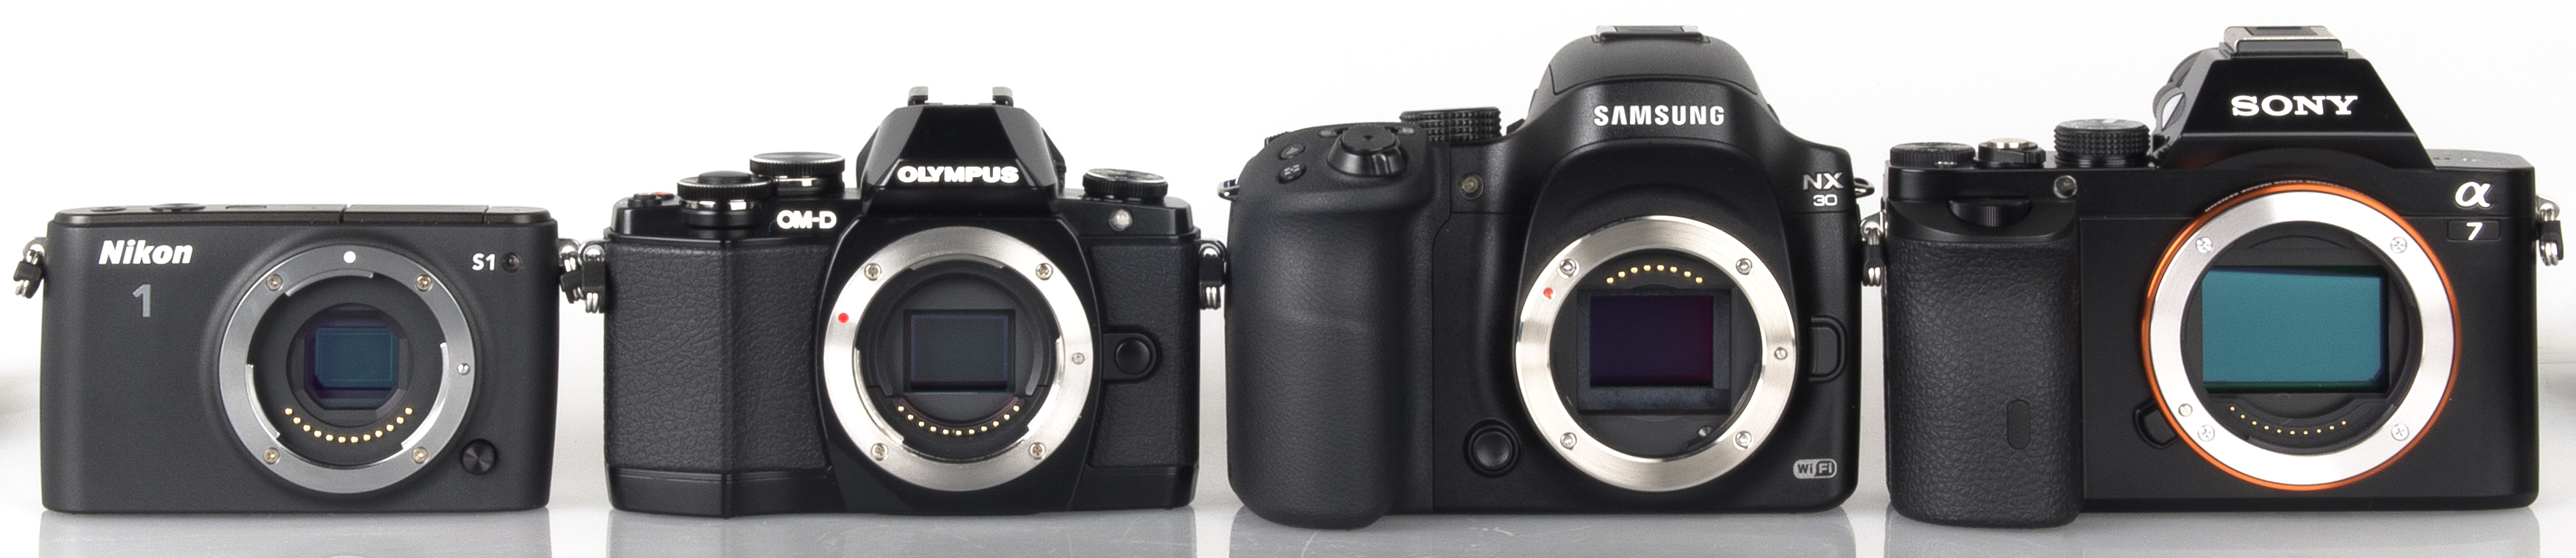 nikon-1-micro-four-thirds-aps-c-full-frame-sensor-size-comparison